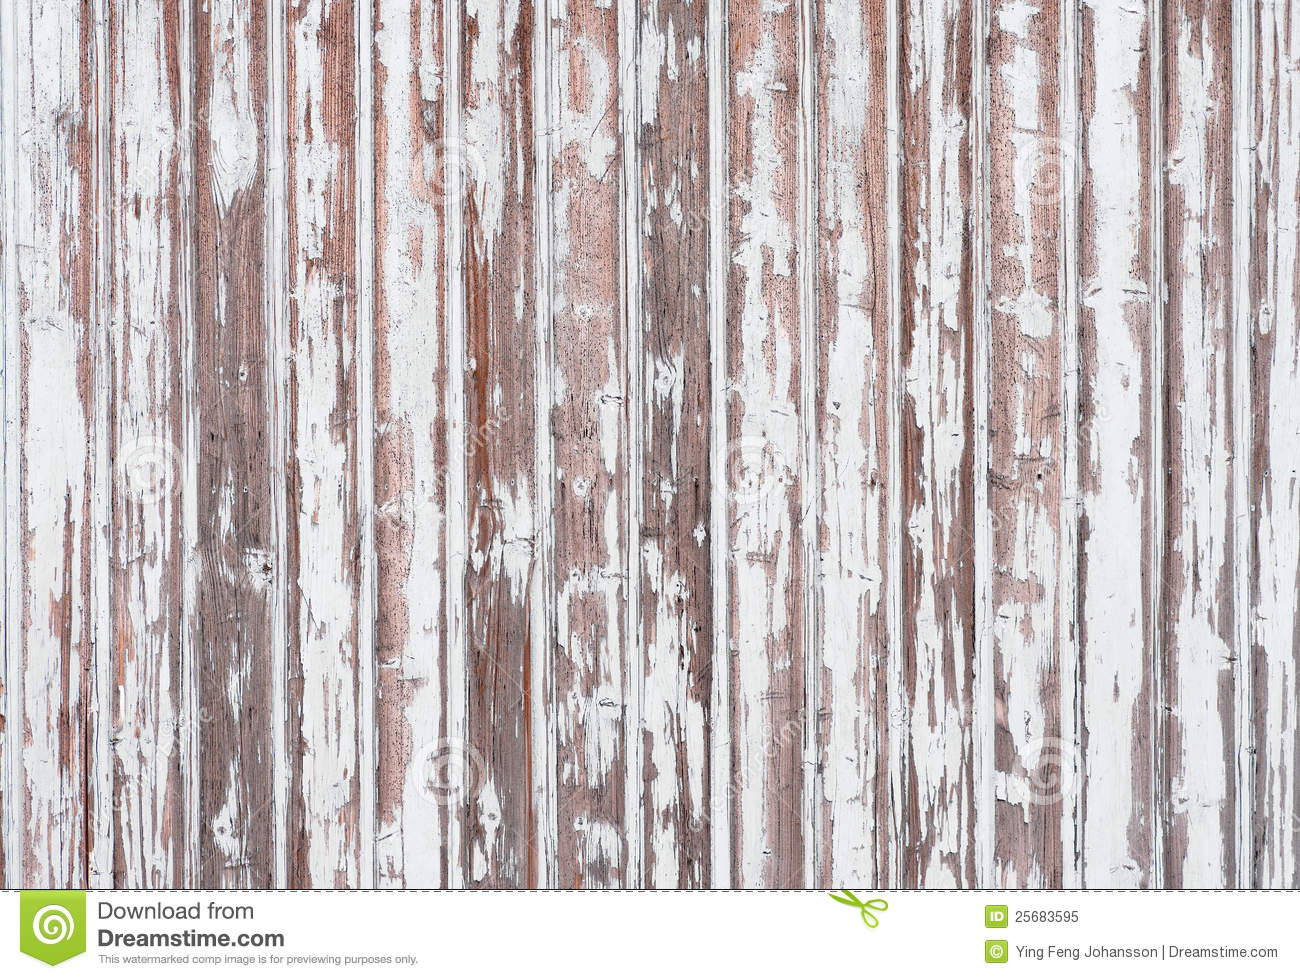 White Wood Wall : White Wooden Wall Royalty Free Stock Photo - Image: 25683595